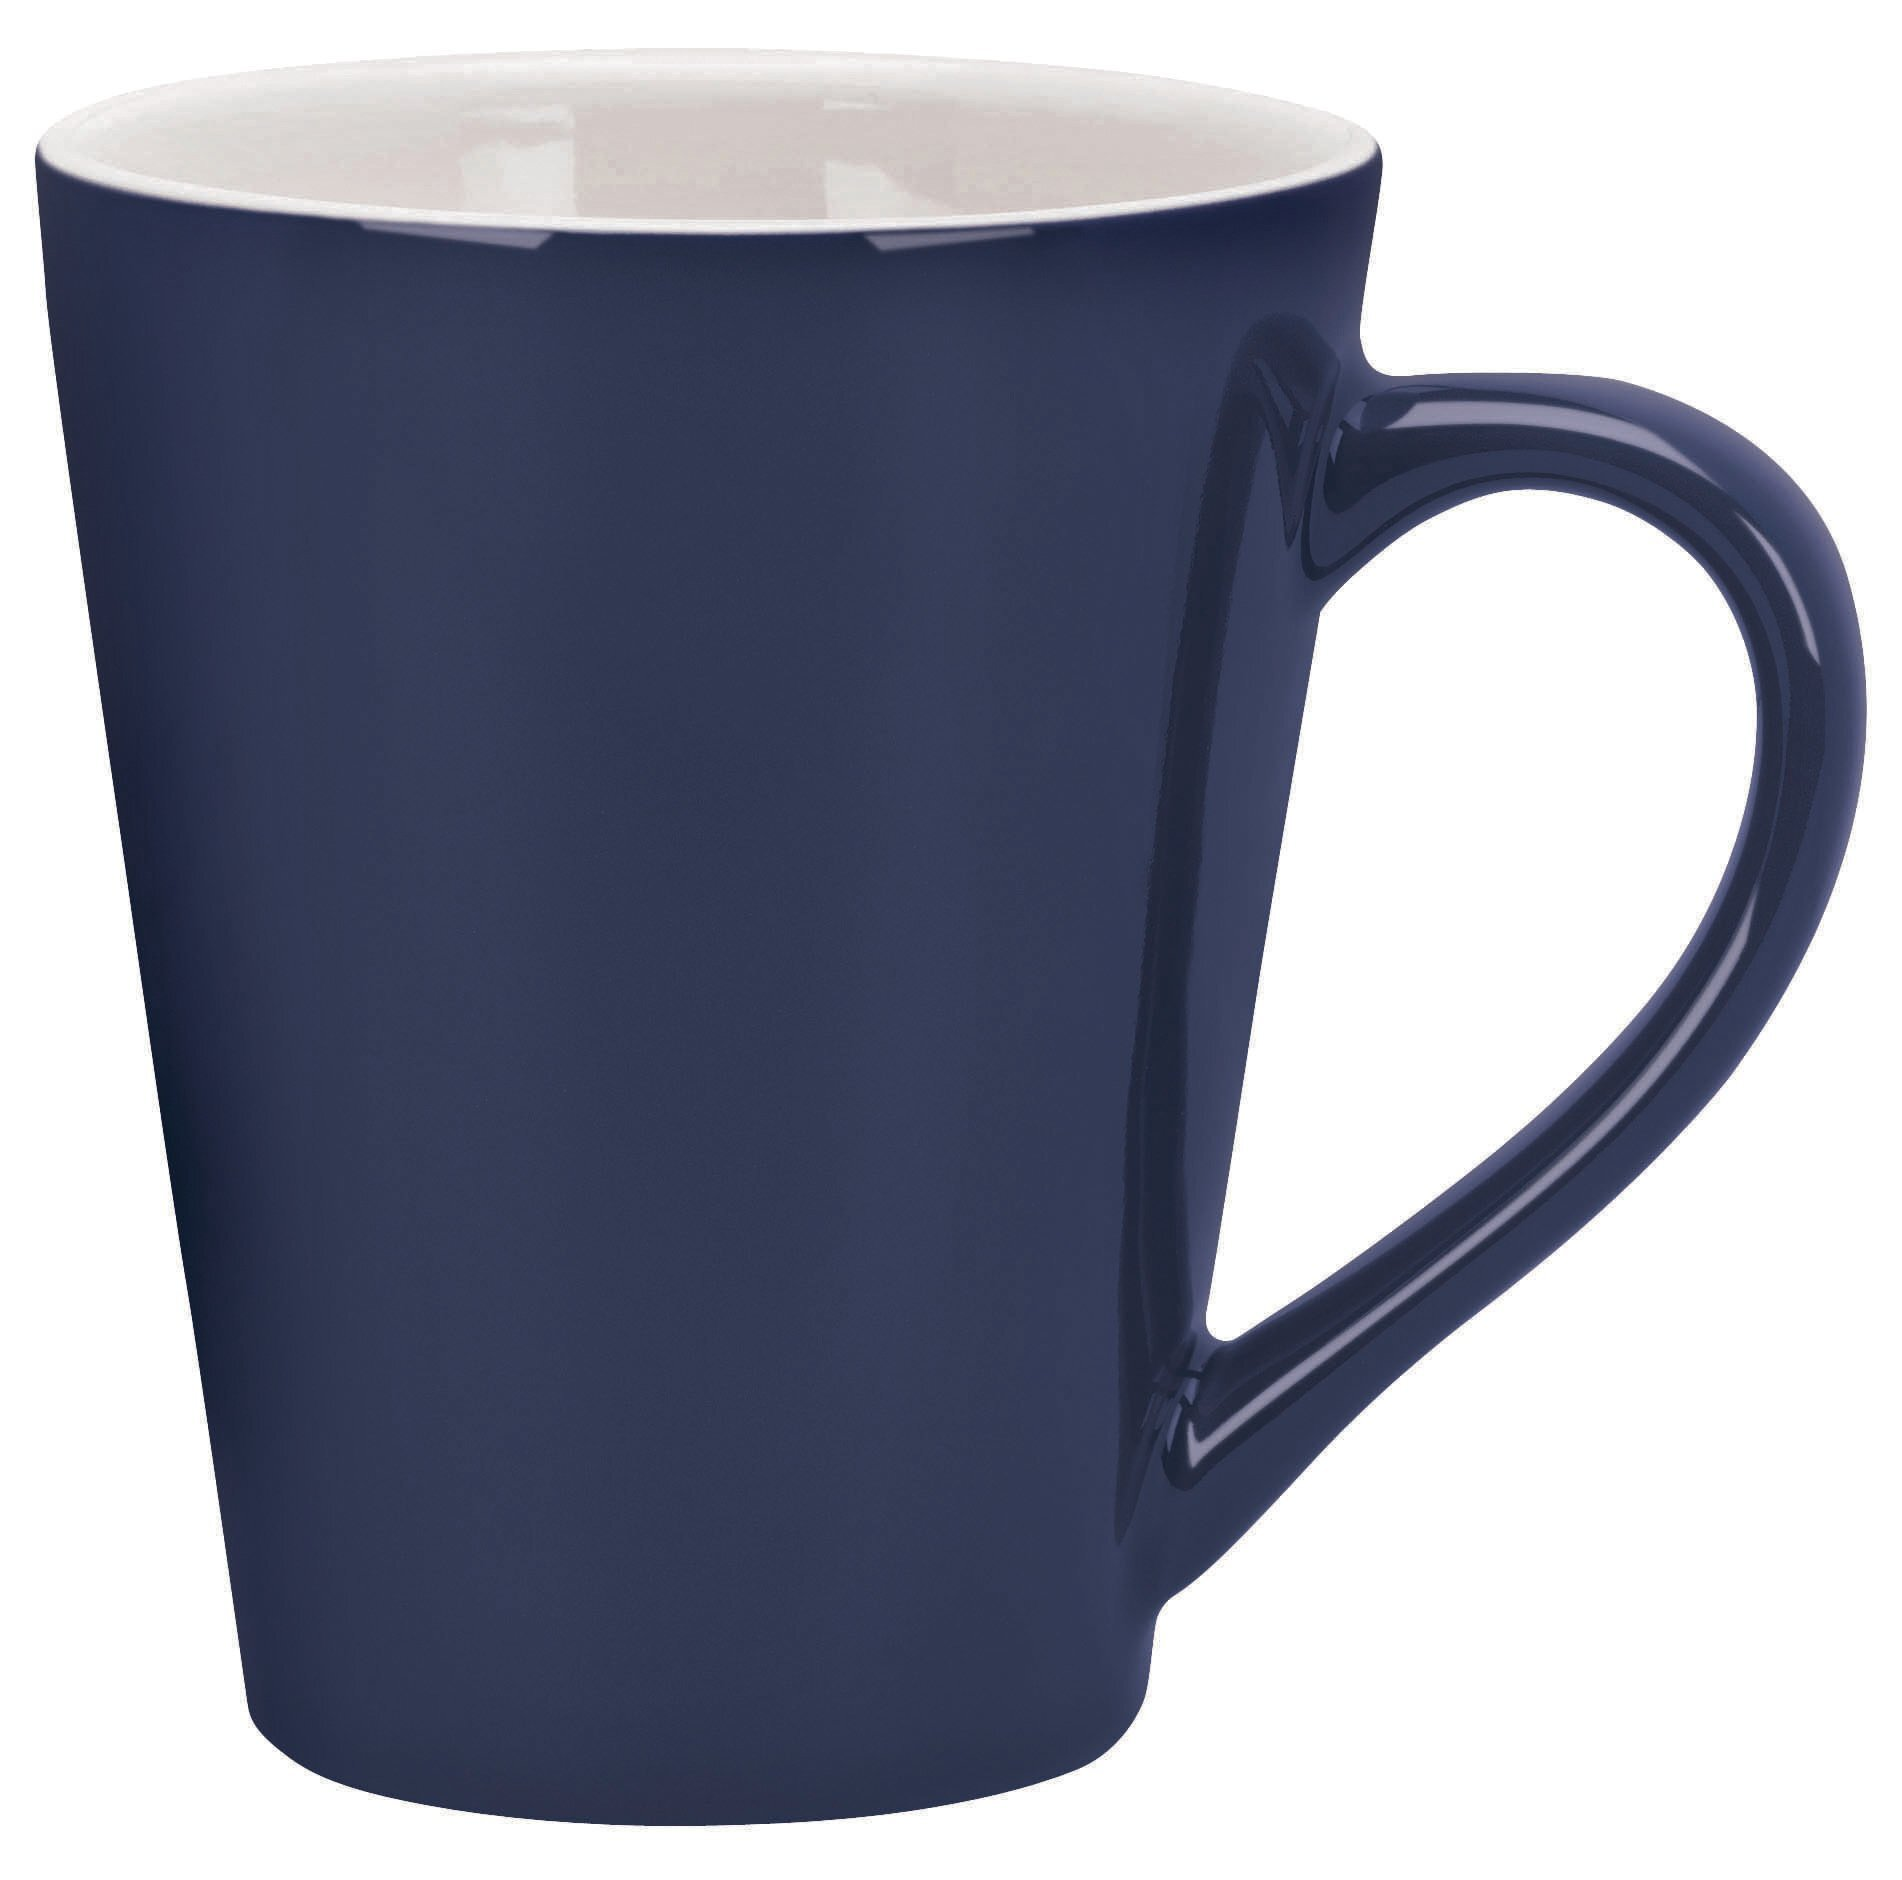 Designer Two Tone Ceramic Mug, 13oz.